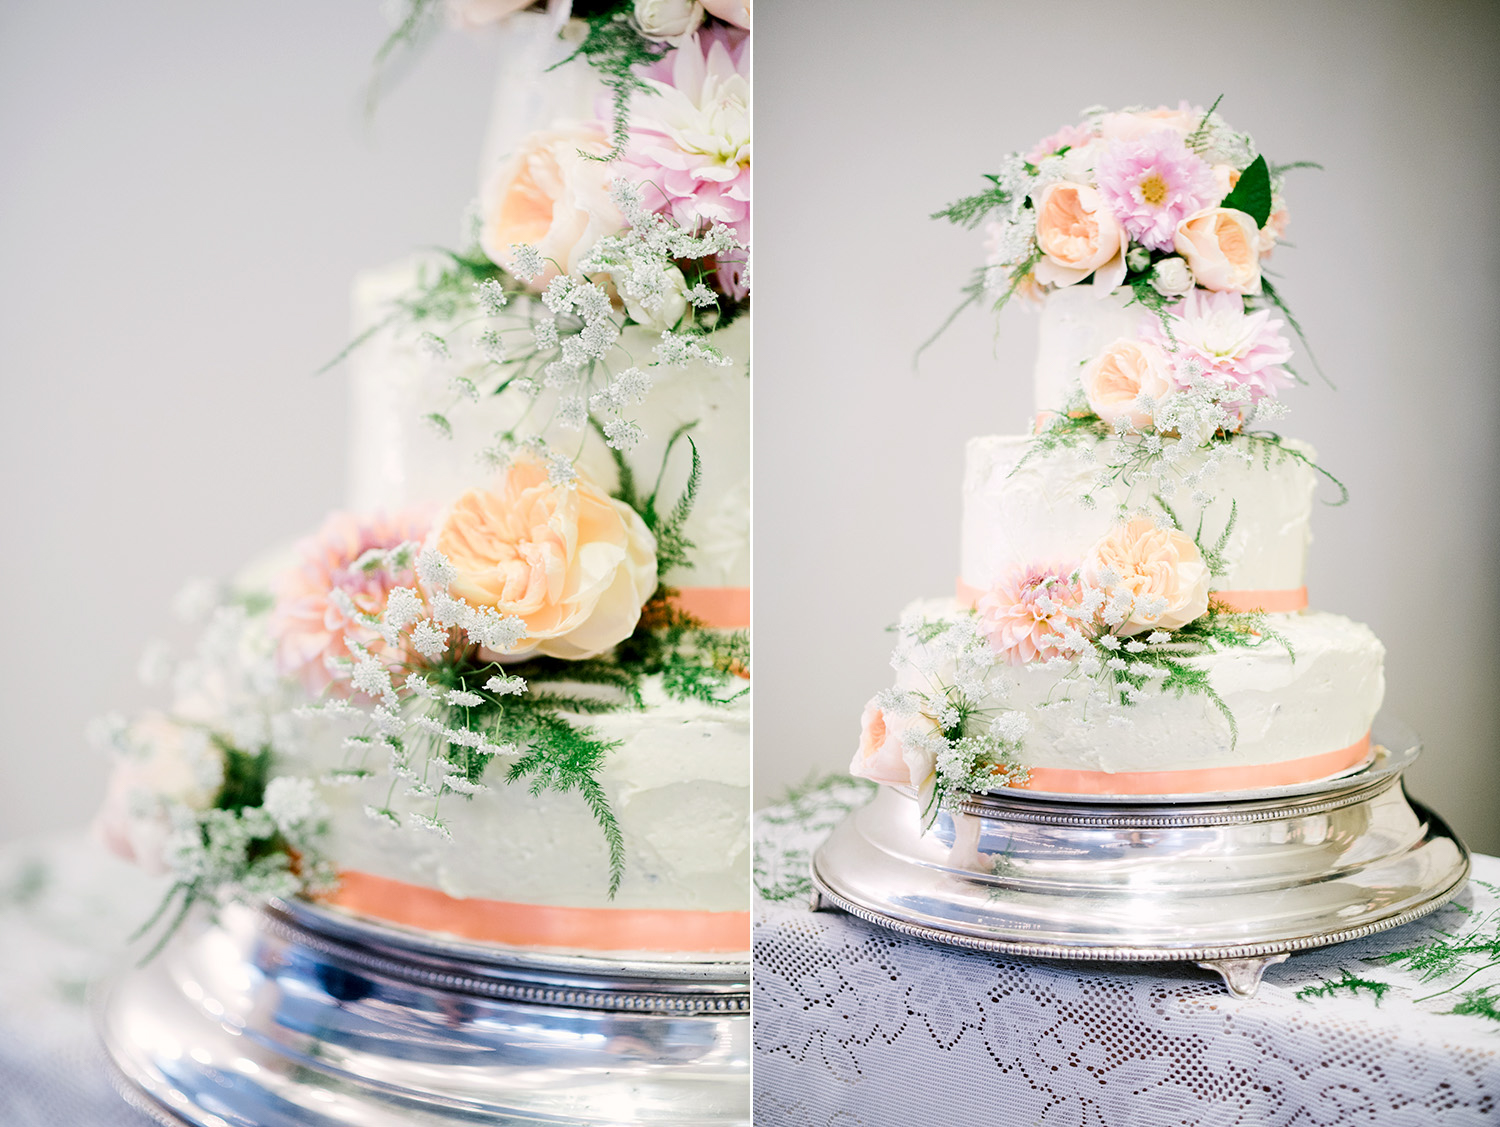 16-floral-wedding-cake-christa-taylor-photography.jpg